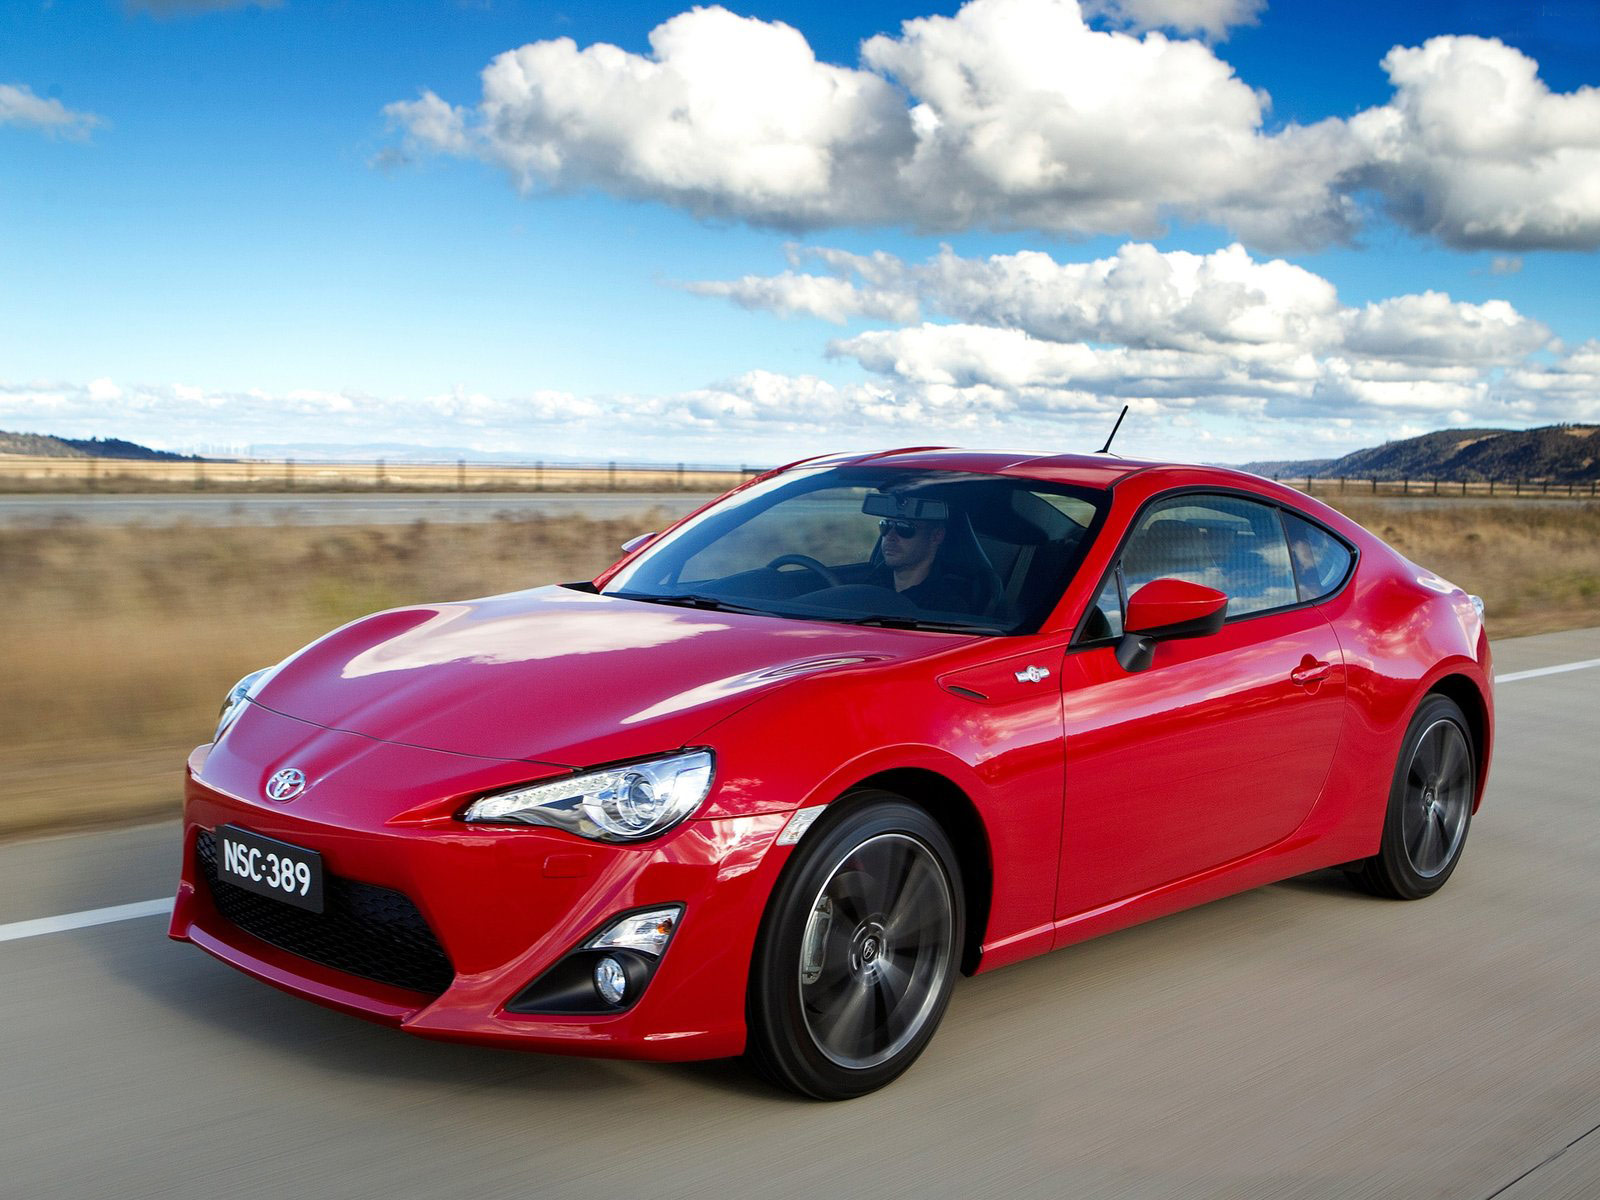 9 Seater Car >> 2012 Toyota 86 GTS Car Insurance Information